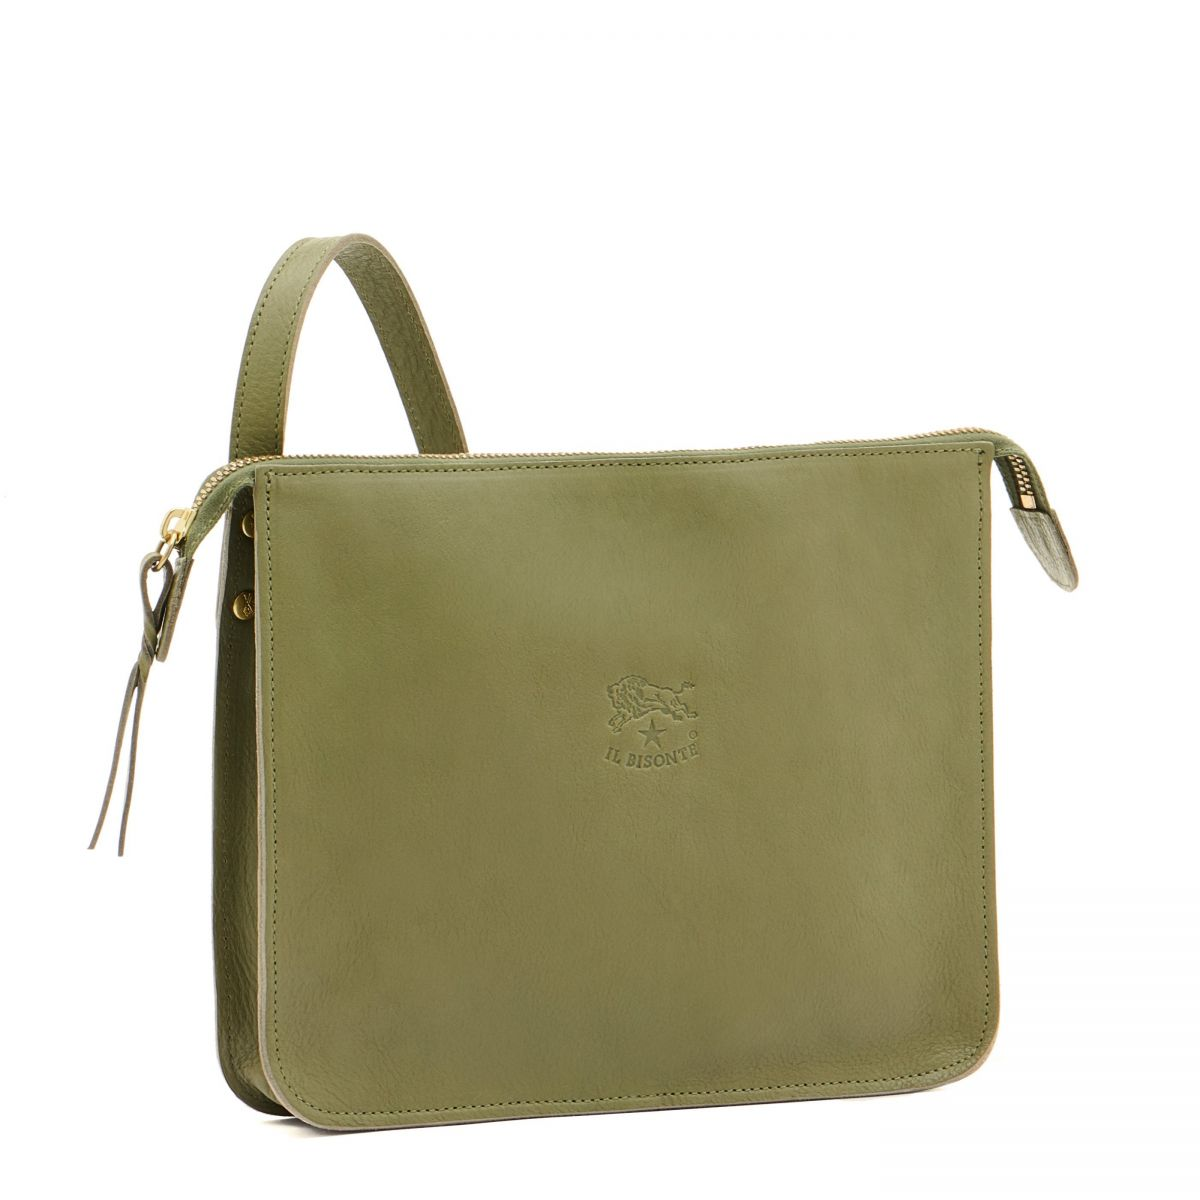 Women's Crossbody Bag in Cowhide Leather BCR046 color Green | Details